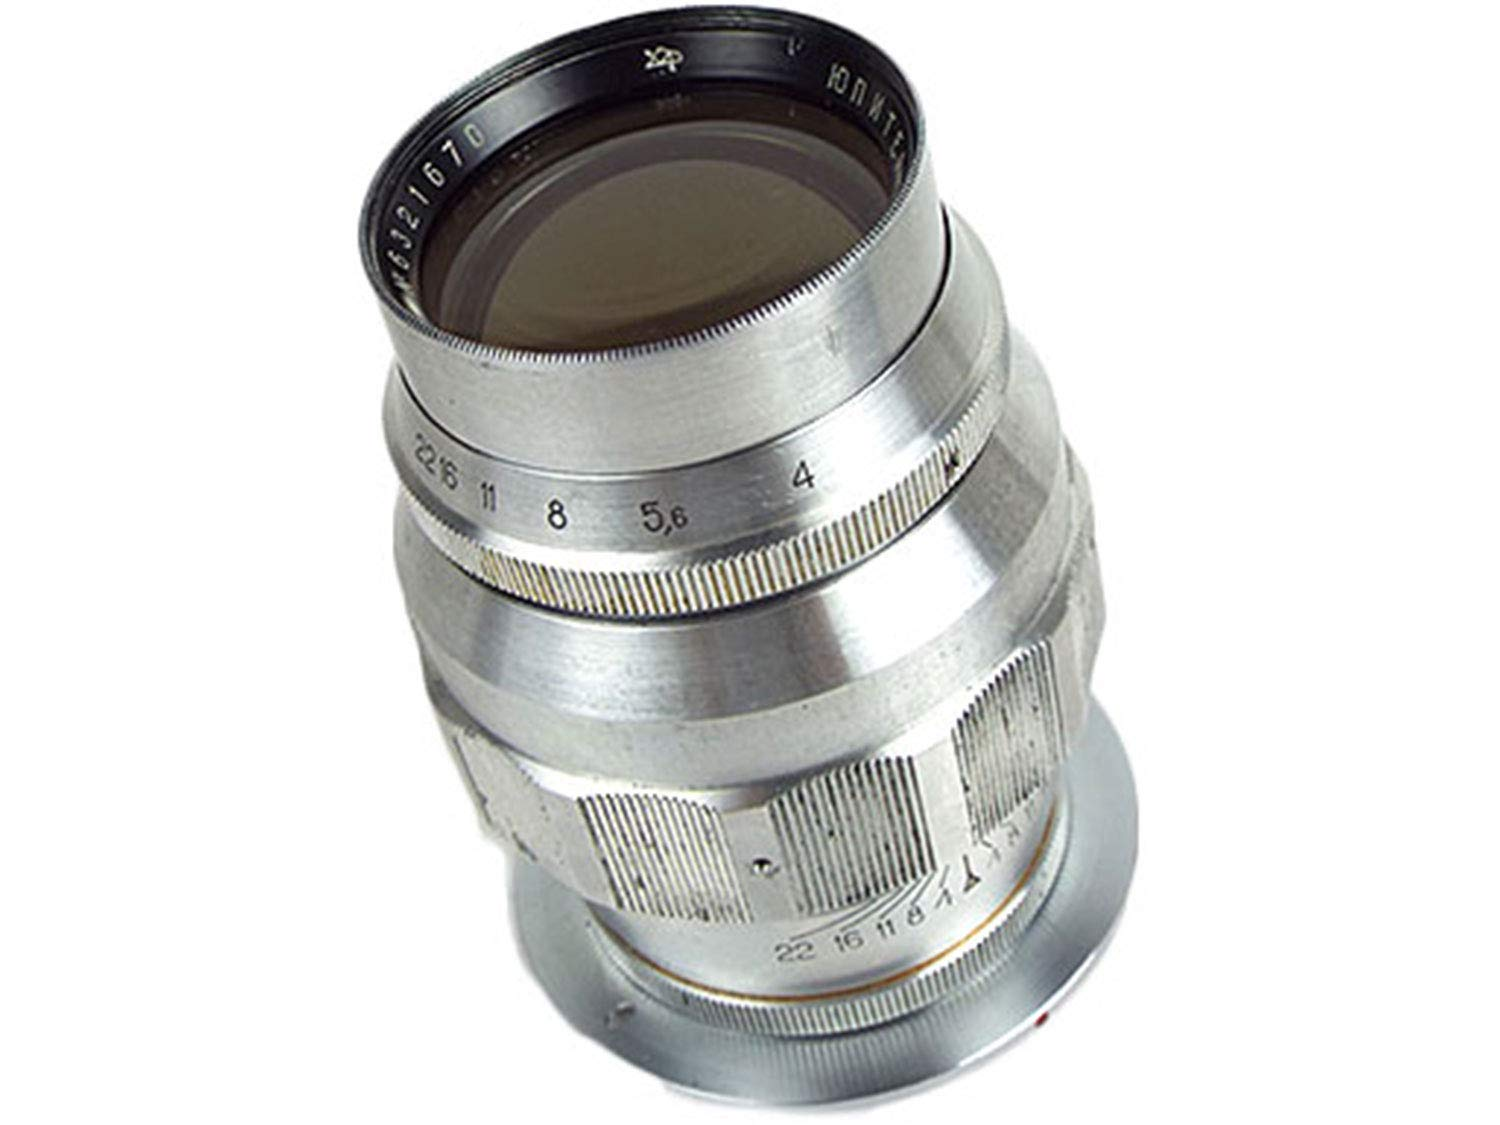 Hyla Optics New 0.43x High Definition Wide Angle Conversion Lens 52mm for Sony HDR-CX760V